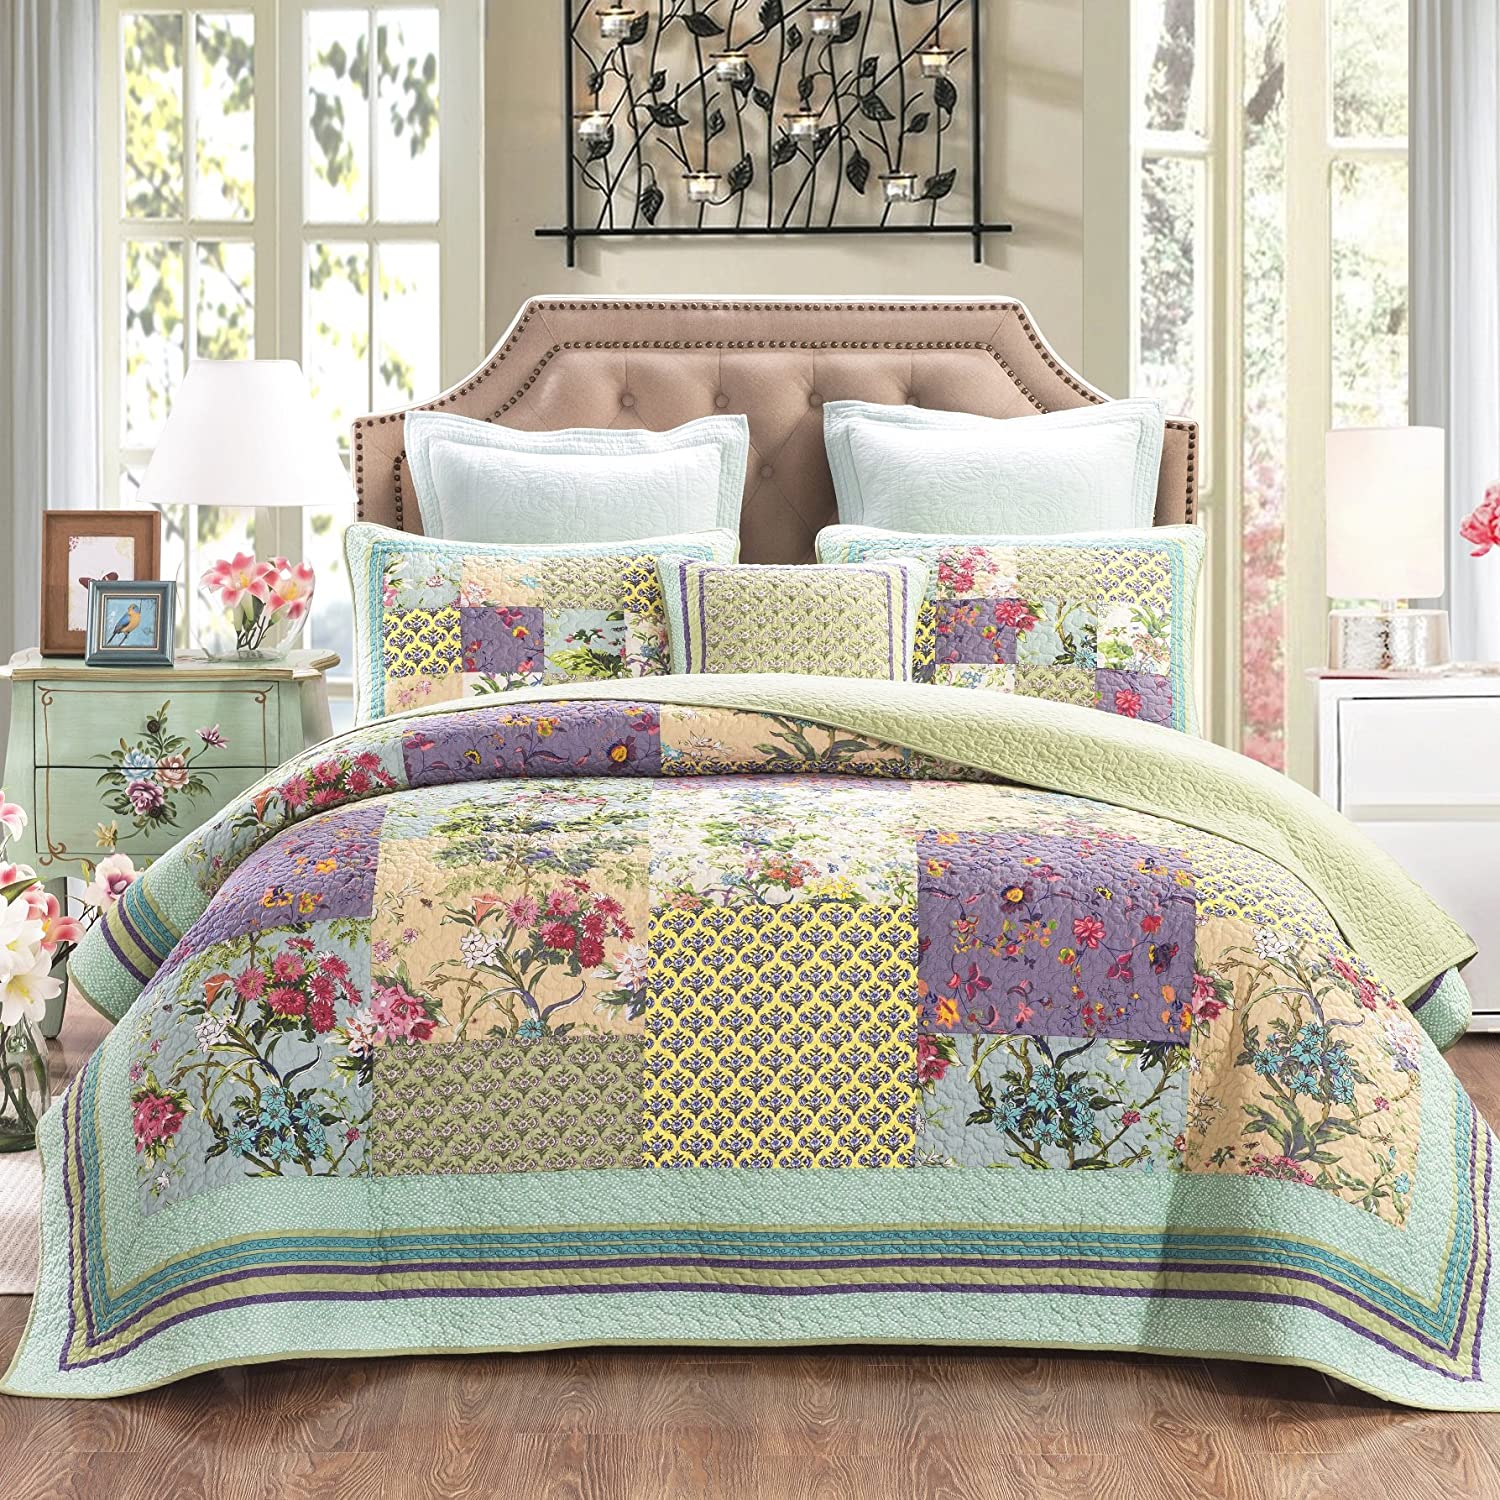 Awesome Amazon.com: DaDa Bedding Frosted Pastel Gardenia Bohemian Reversible Cotton  Real Patchwork Quilted Coverlet Bedspread Set   Bright Vibrant Floral  Paisley ...